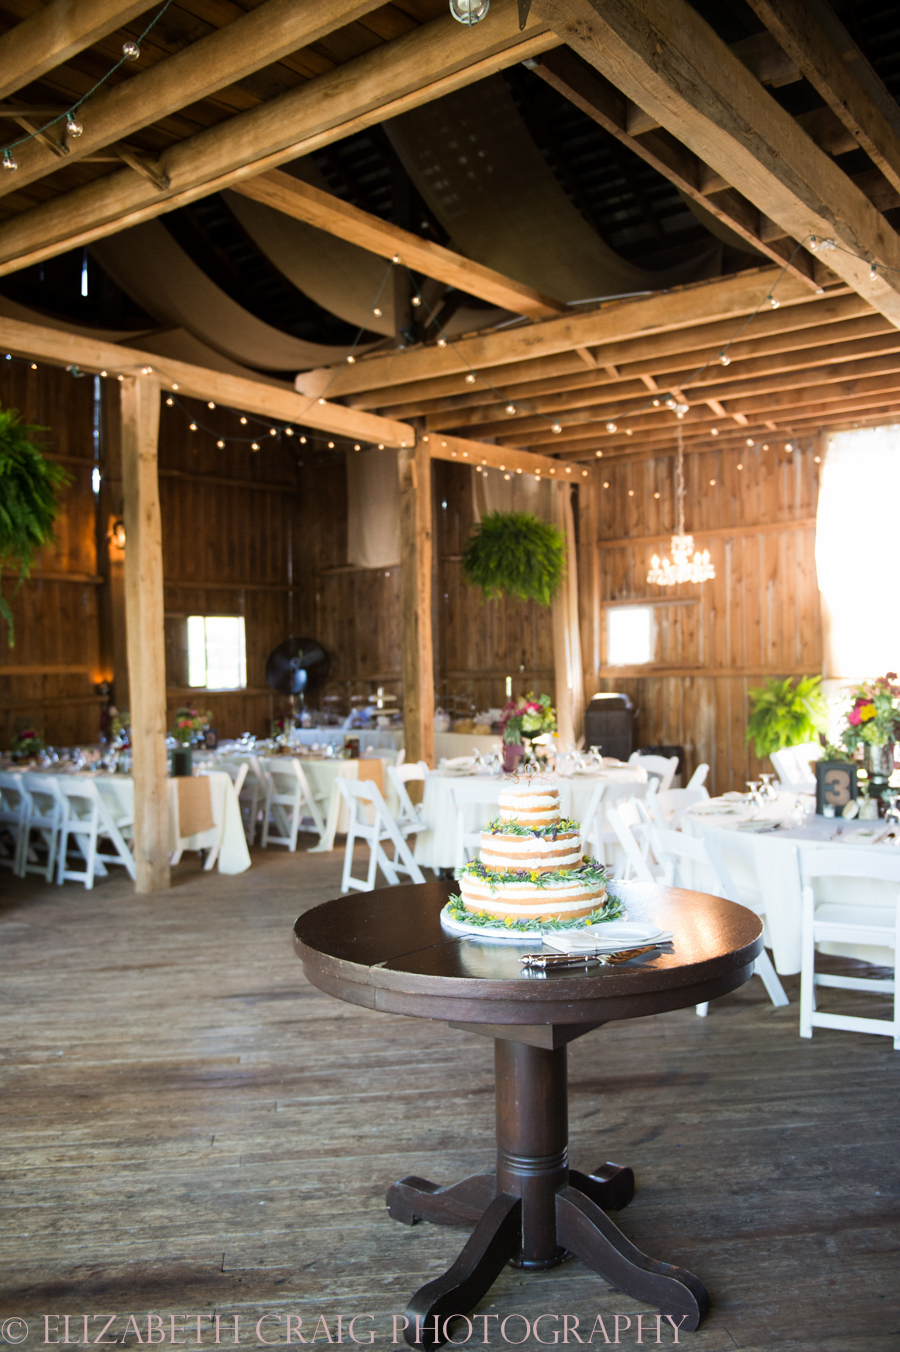 Shady Elms Farm Weddings and Receptions Elizabeth Craig Photography-0093